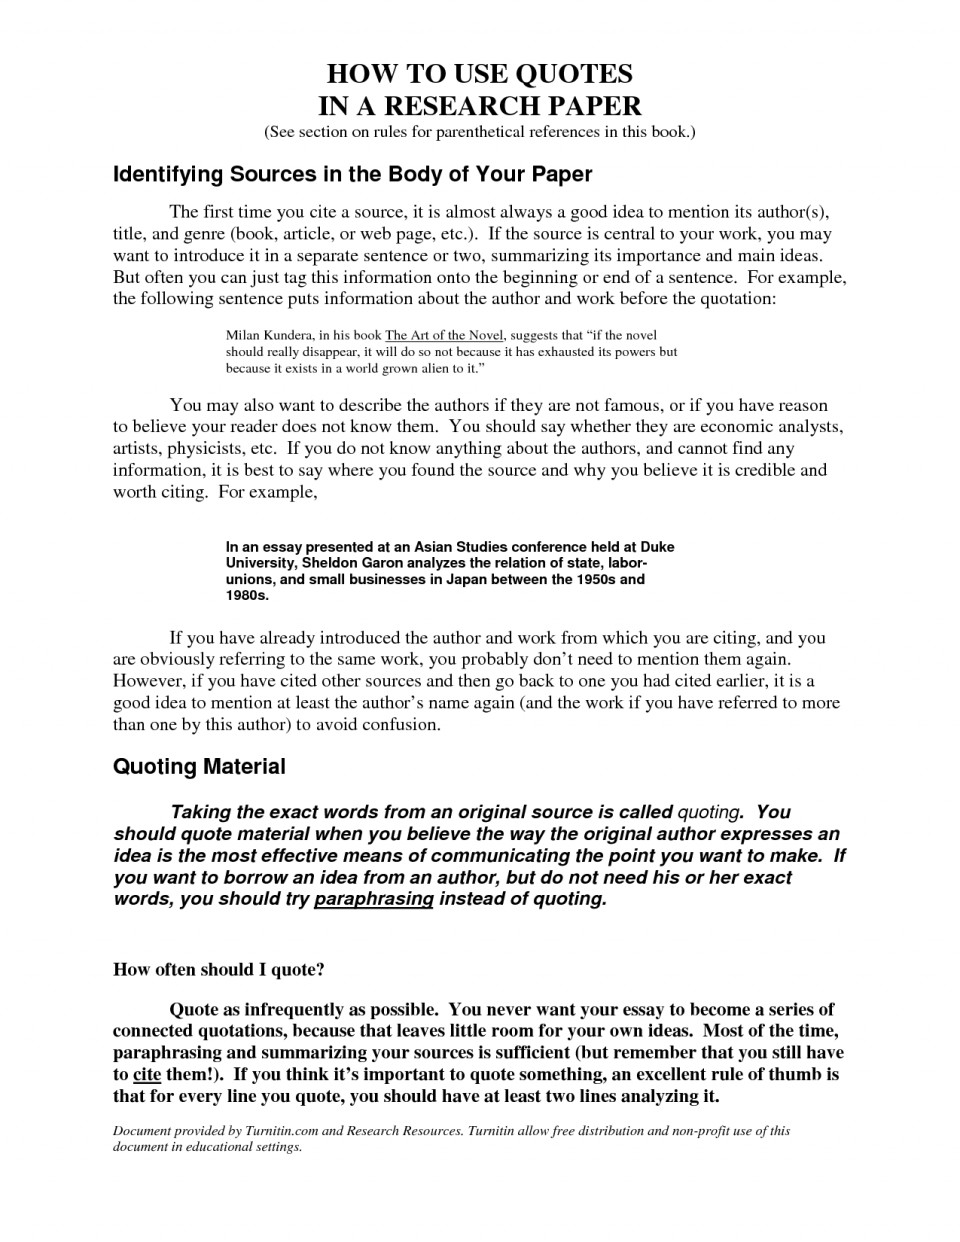 003 Best Solutions Of Writing Quotes In Essays Marvelous Embedding On Quotestopics Essay Example Quoting Frightening An Examples Dialogue Shakespeare A Play Mla 960